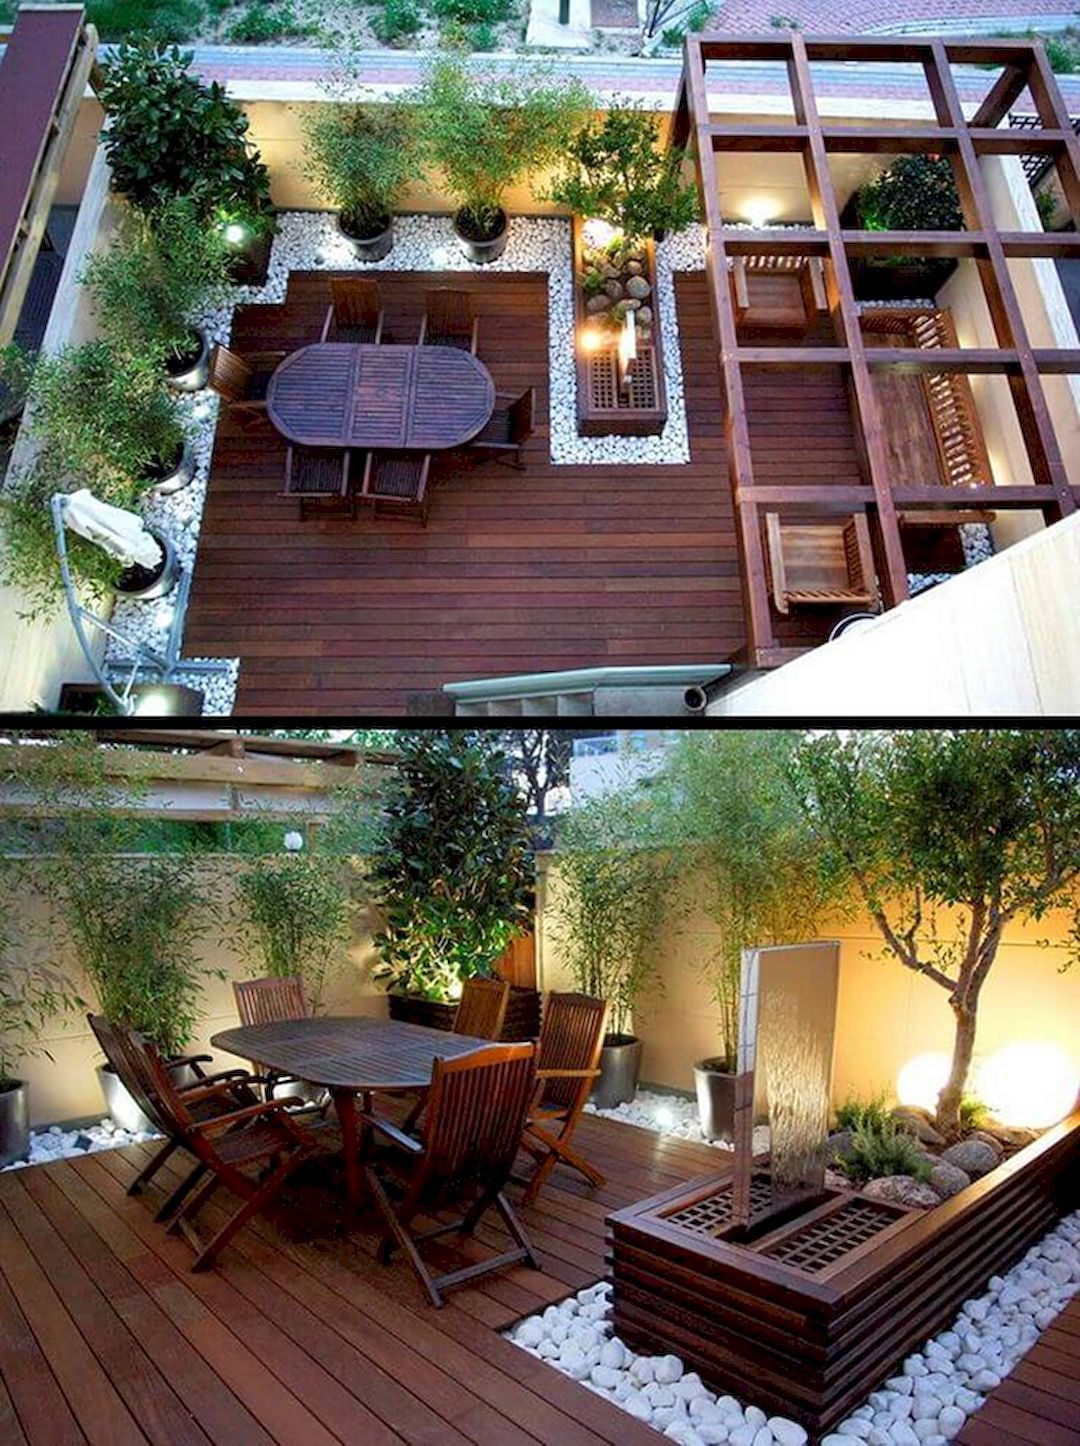 cool backyard deck design idea 9 backyard deck designs deck